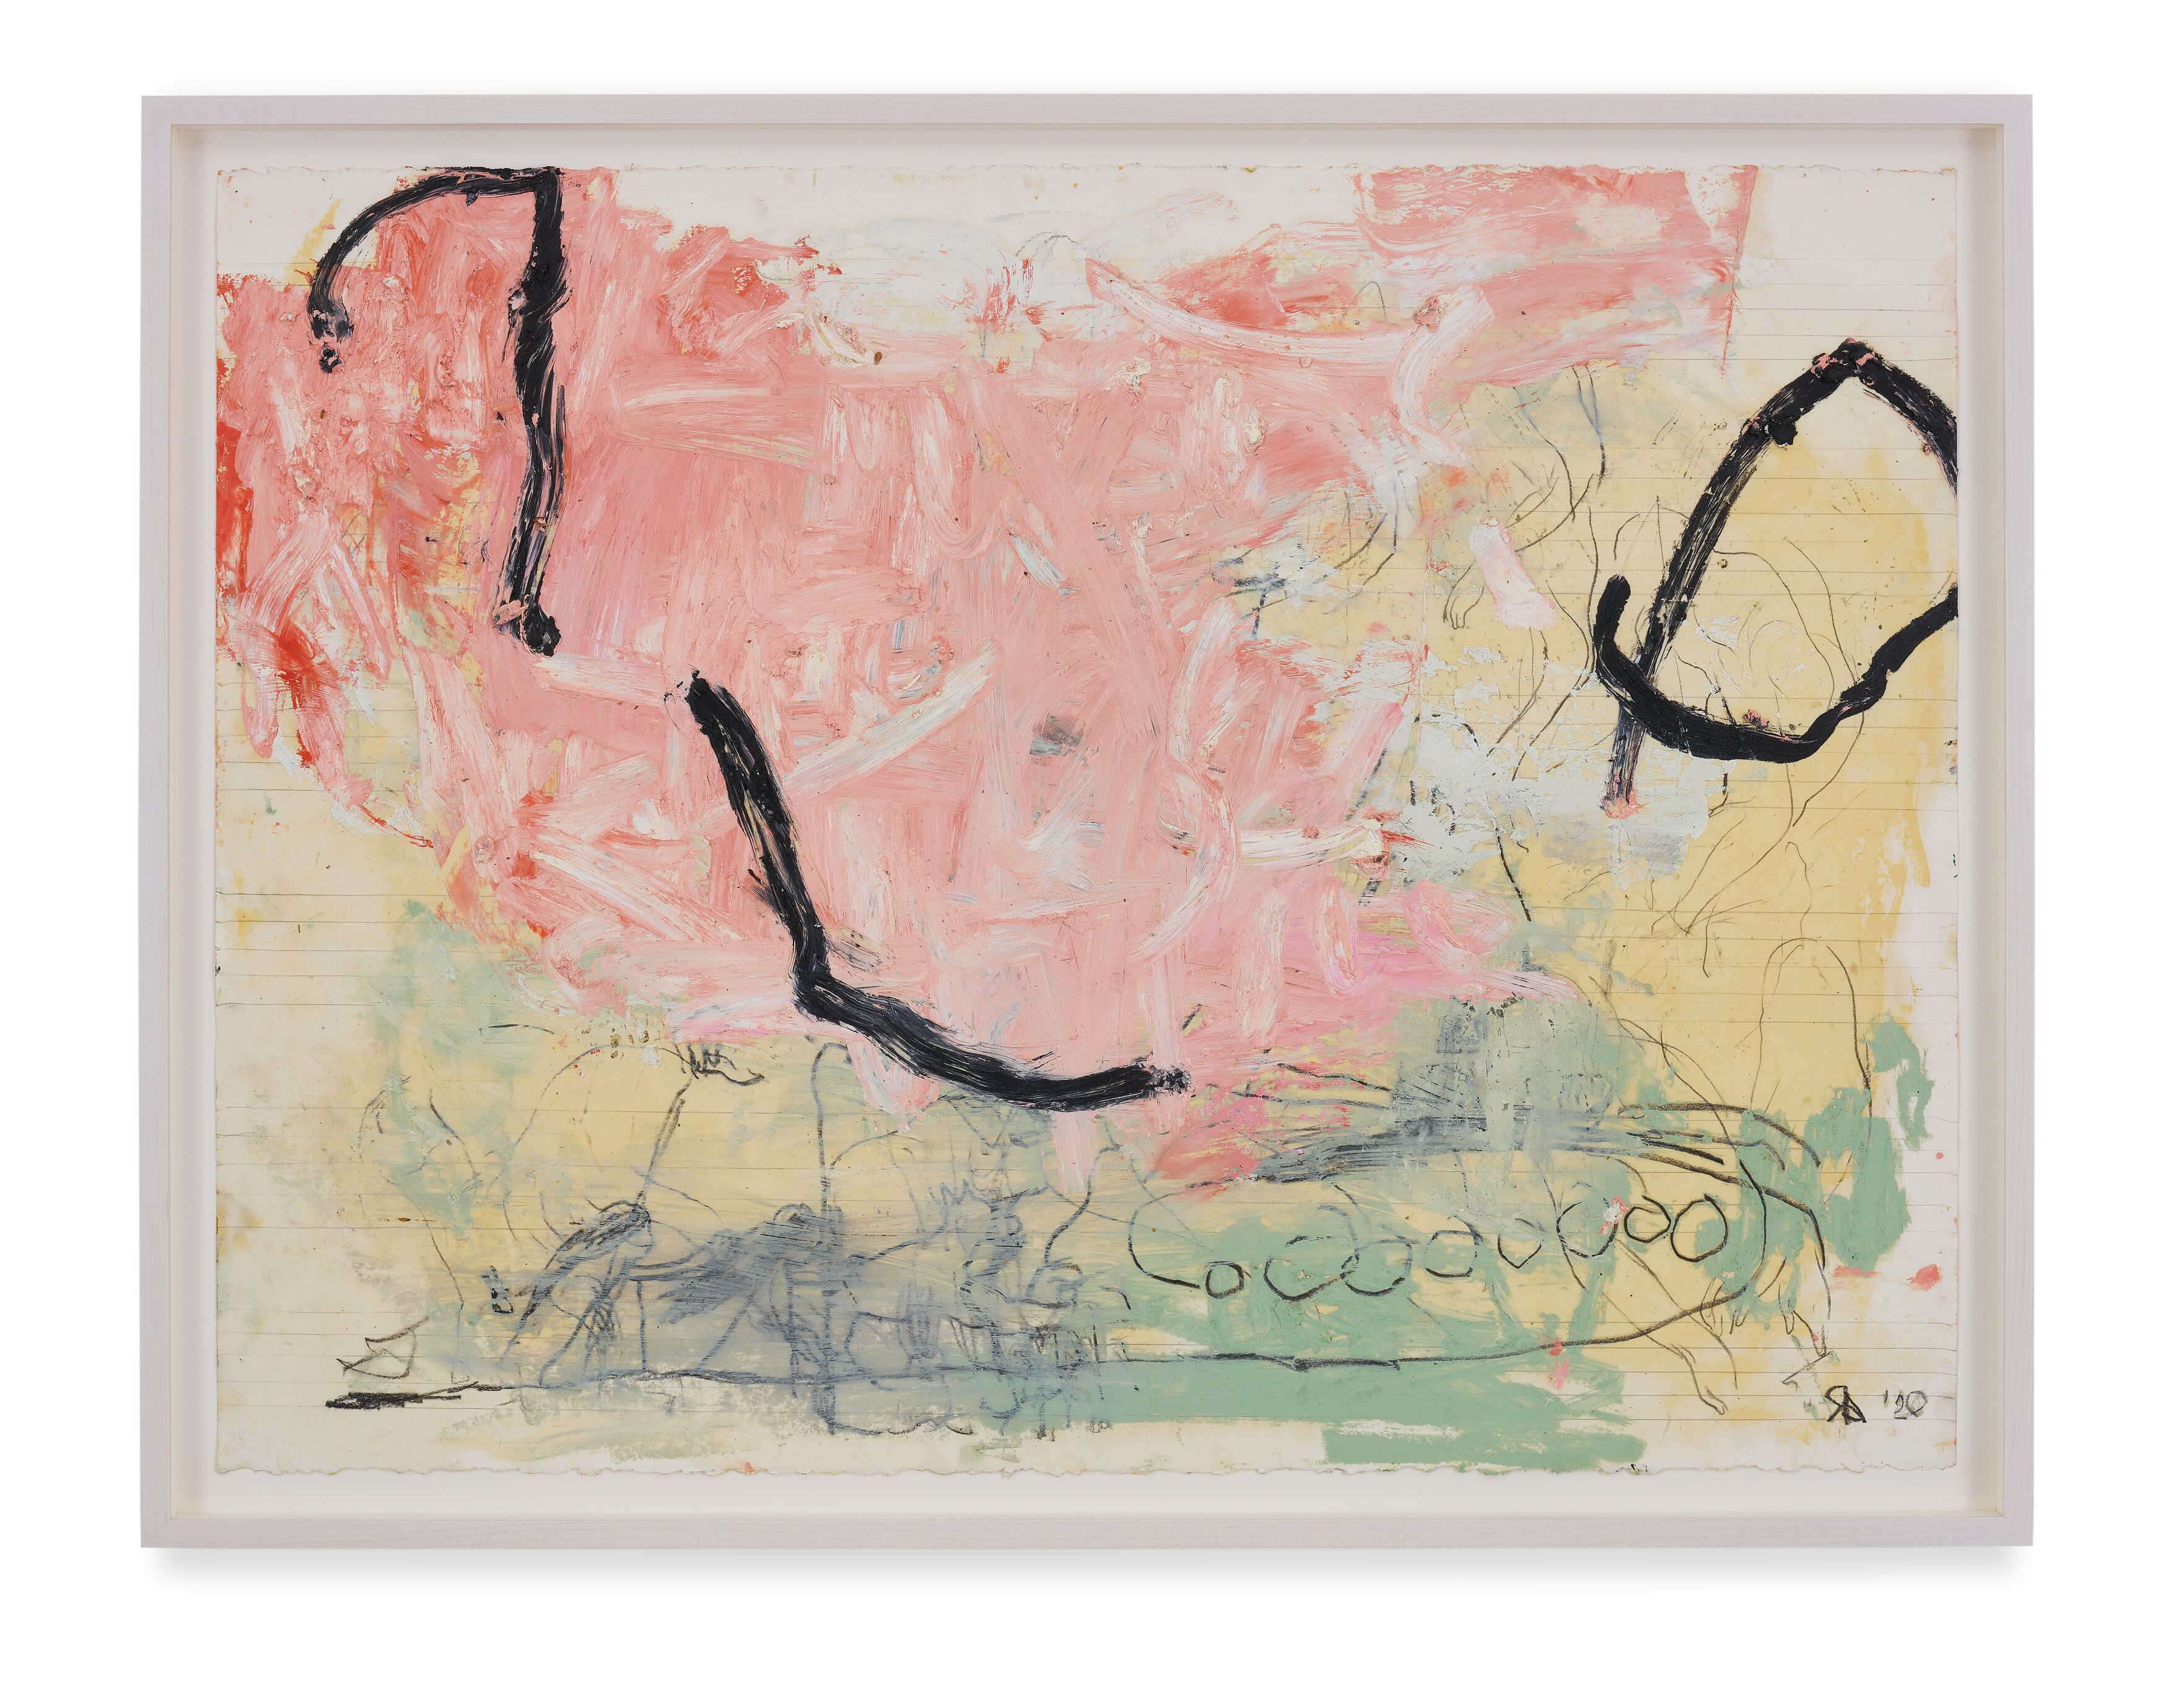 Rita Ackermann / Mama Study 3 / 2020 / Oil and China marker on paper / 55.9 x 76.2 cm / 22 x 30 in / Courtesy the artist and Hauser & Wirth. Photo: Jon Etter